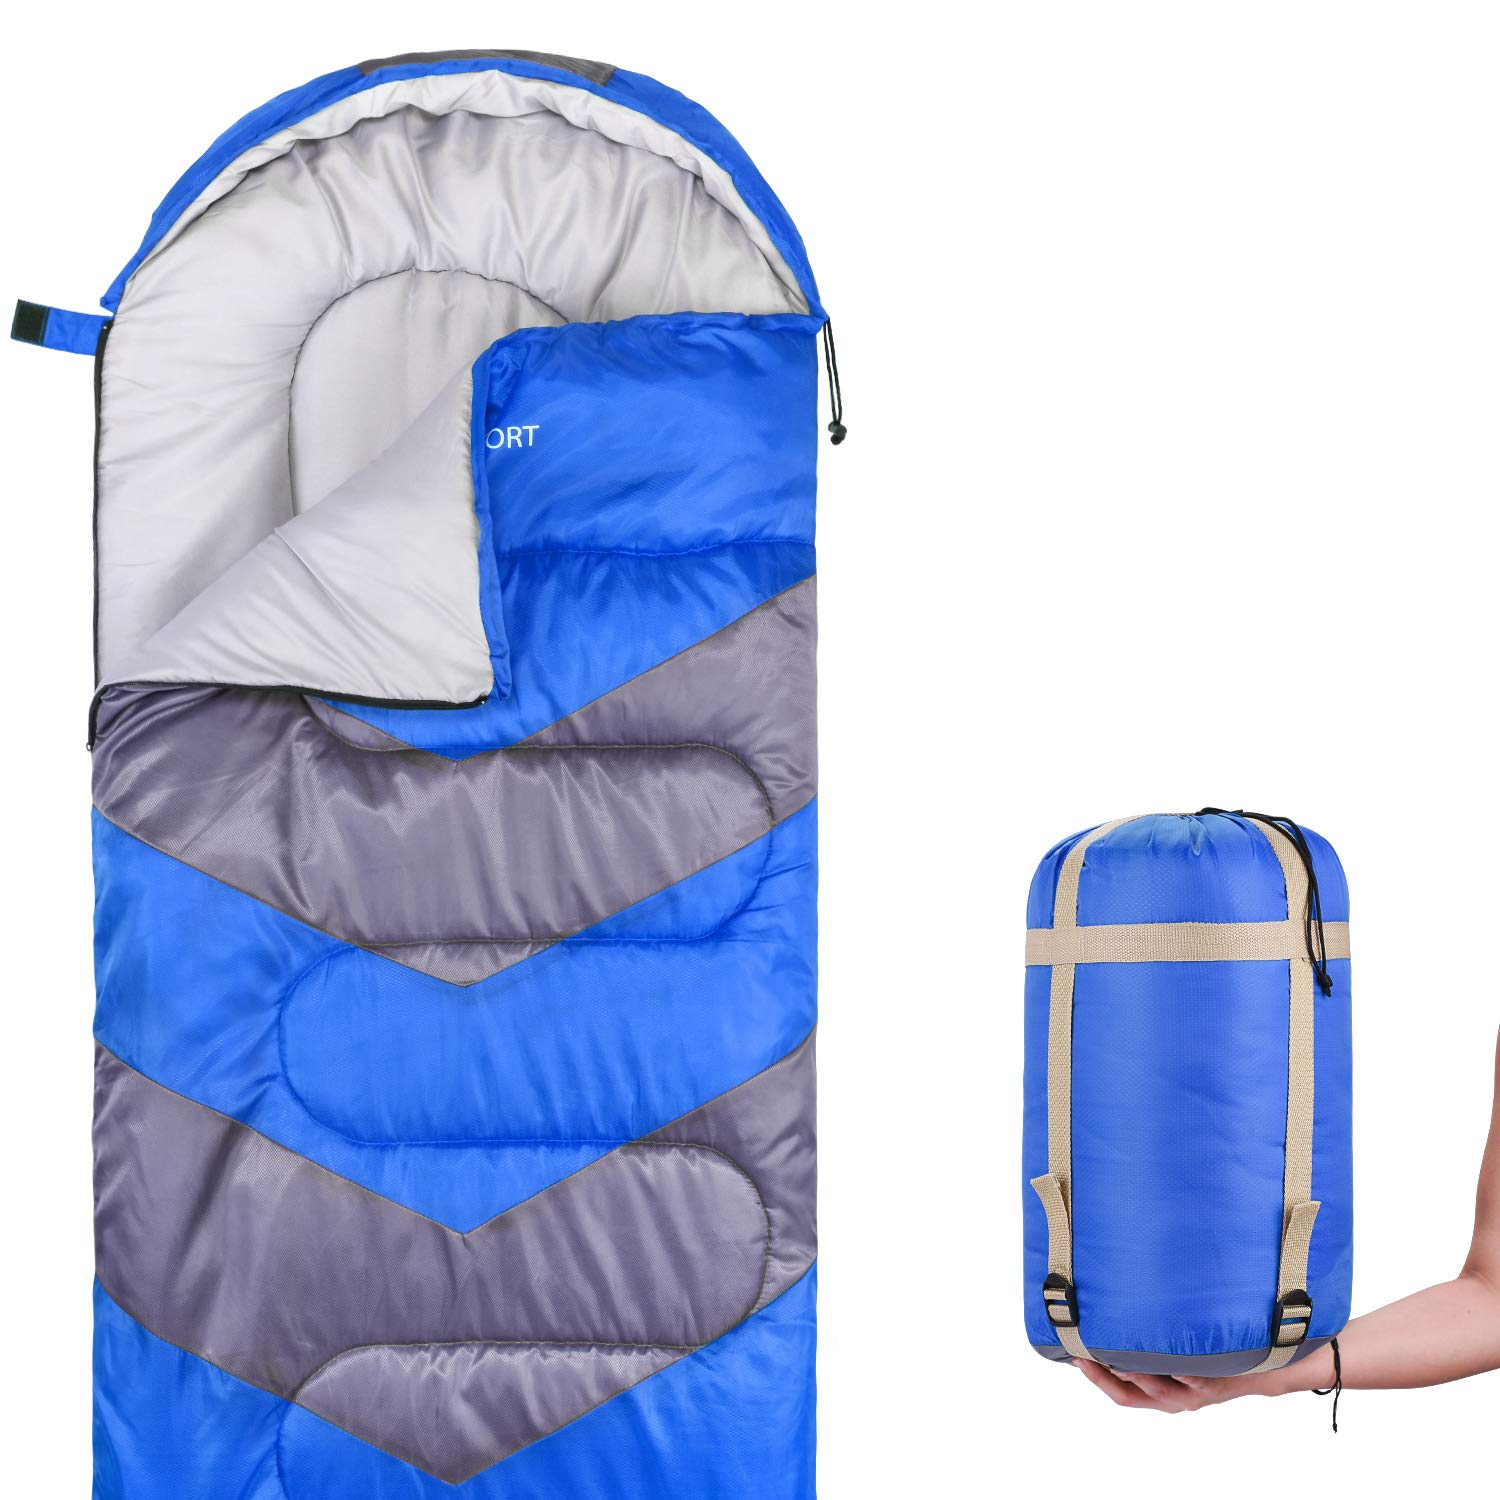 Abco Tech Sleeping Bag - Envelope Lightweight Portable, Waterproof, Comfort with Compression Sack - Great for 4 Season Traveling, Camping, Hiking, Outdoor Activities & Boys. (Single) (Blue) by Abco Tech